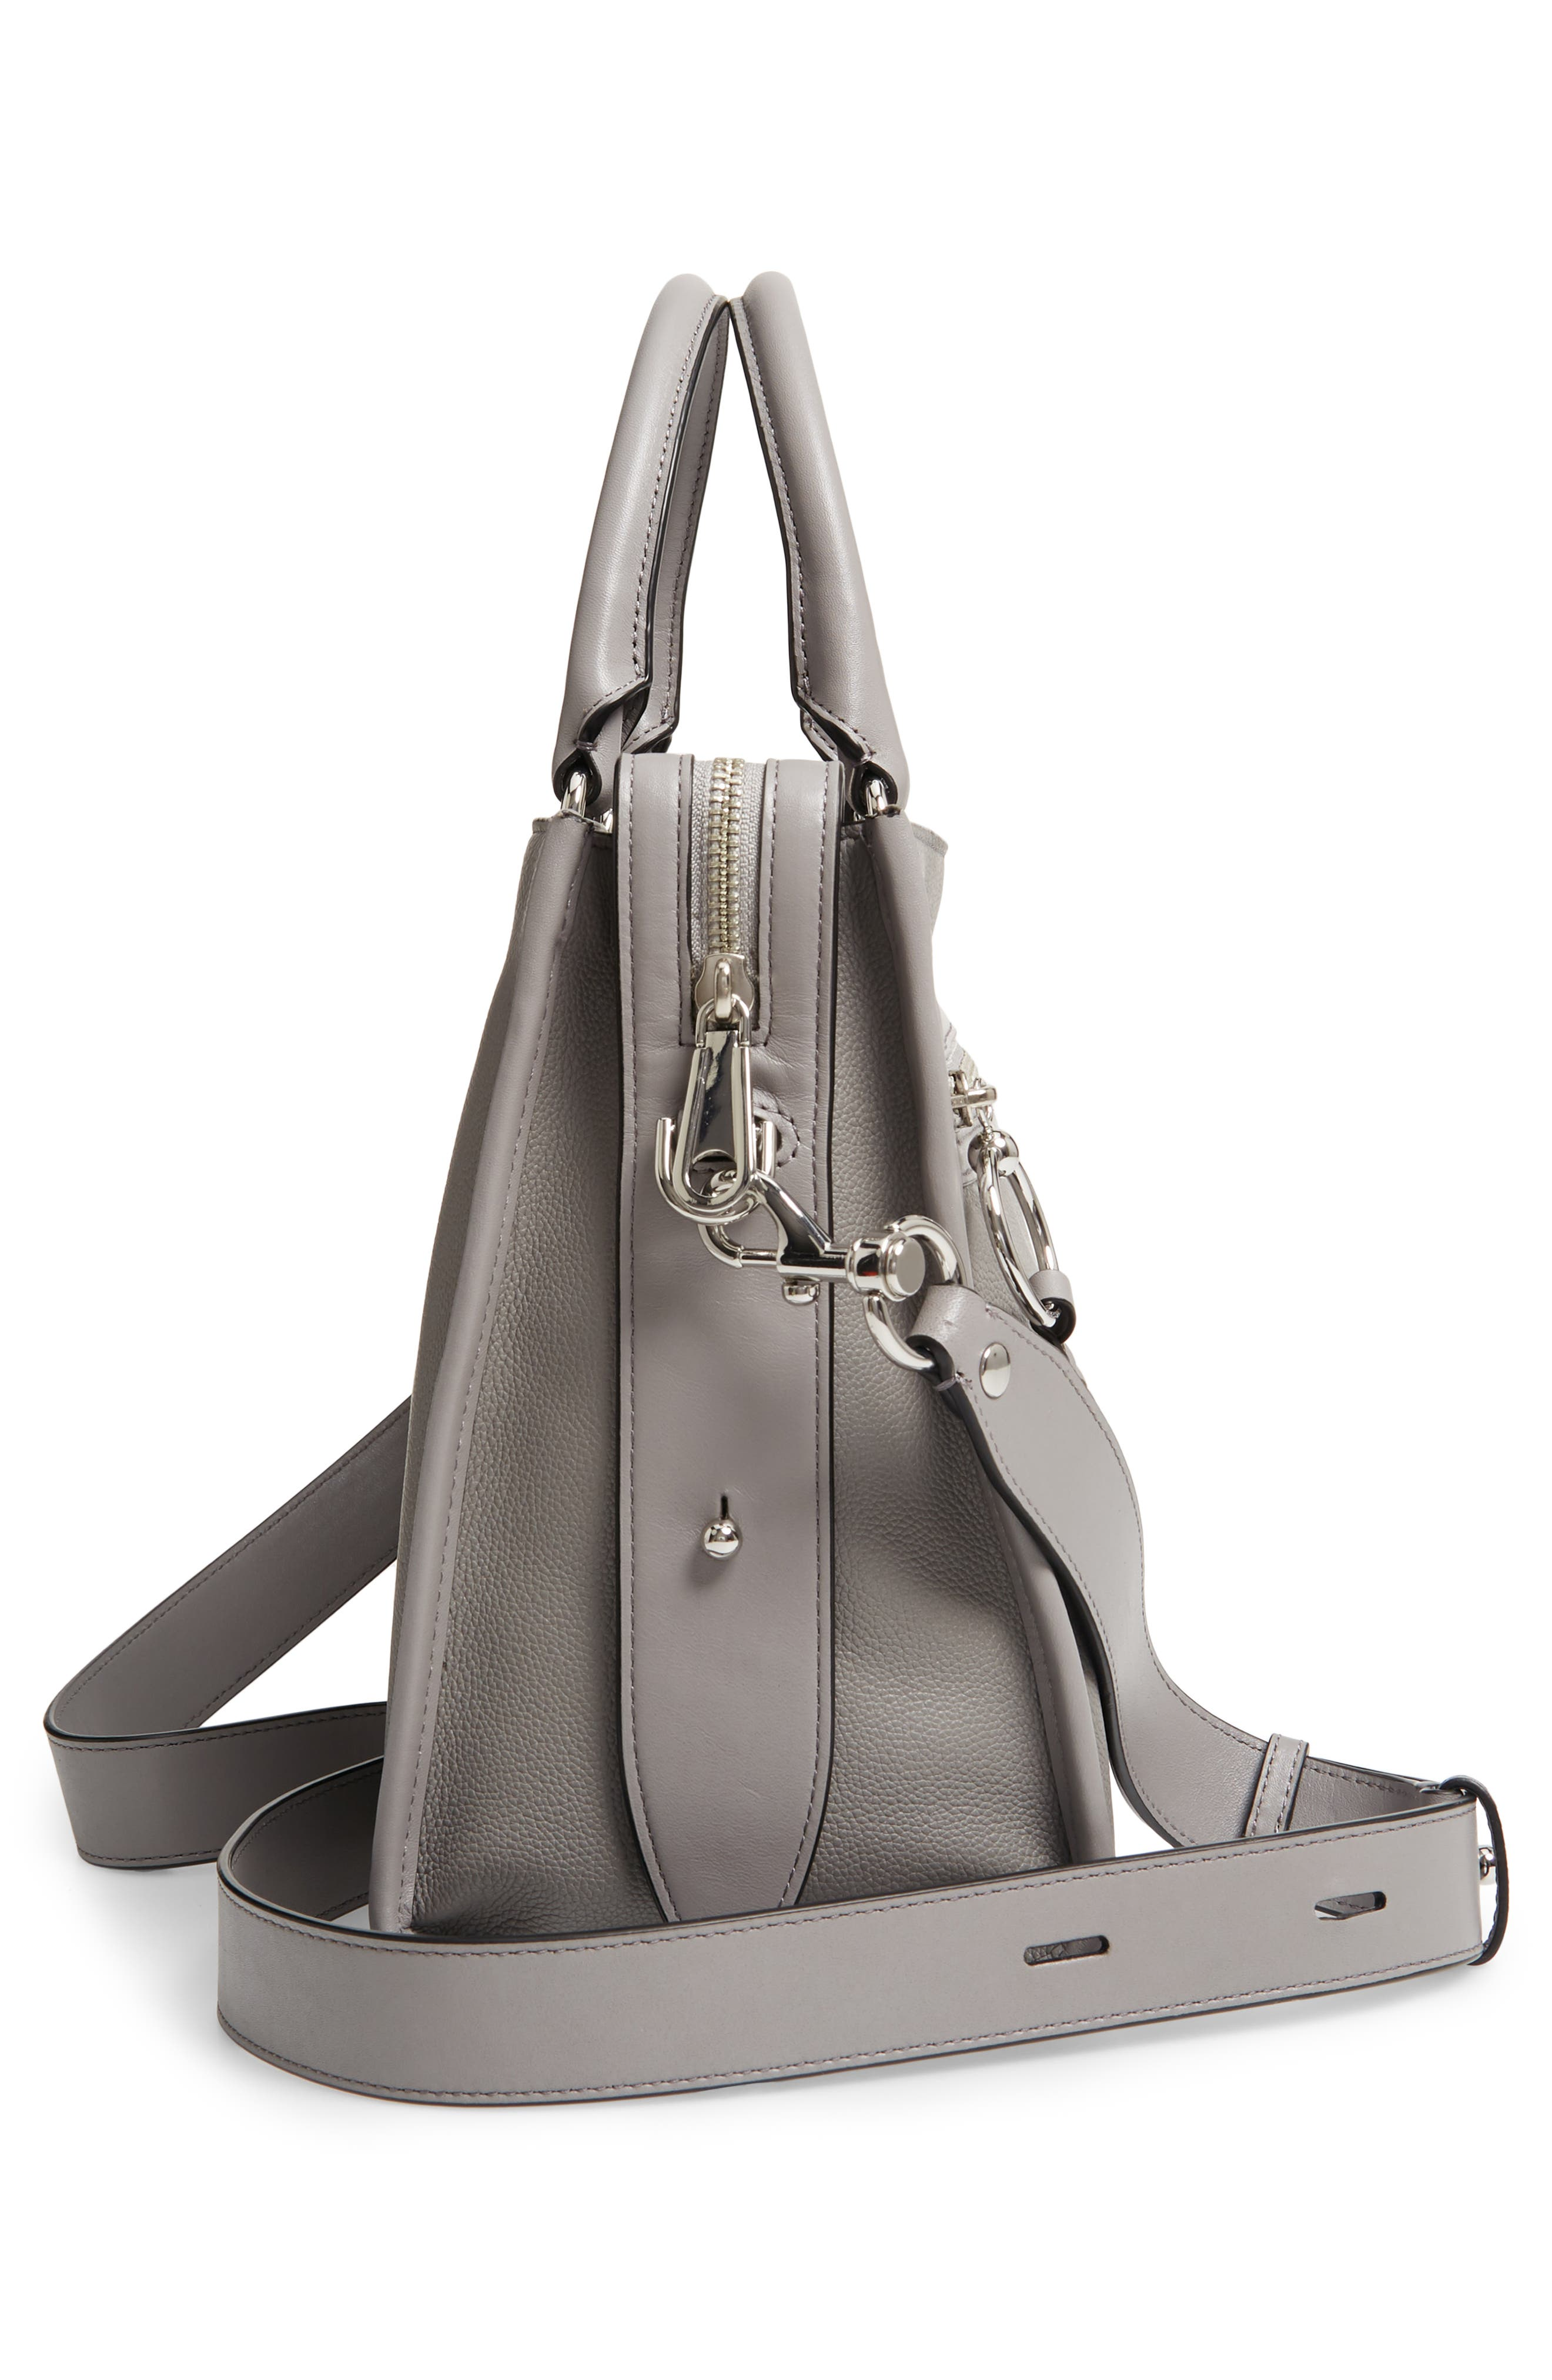 REBECCA MINKOFF,                             Bedford Zip Leather Satchel,                             Alternate thumbnail 5, color,                             GREY